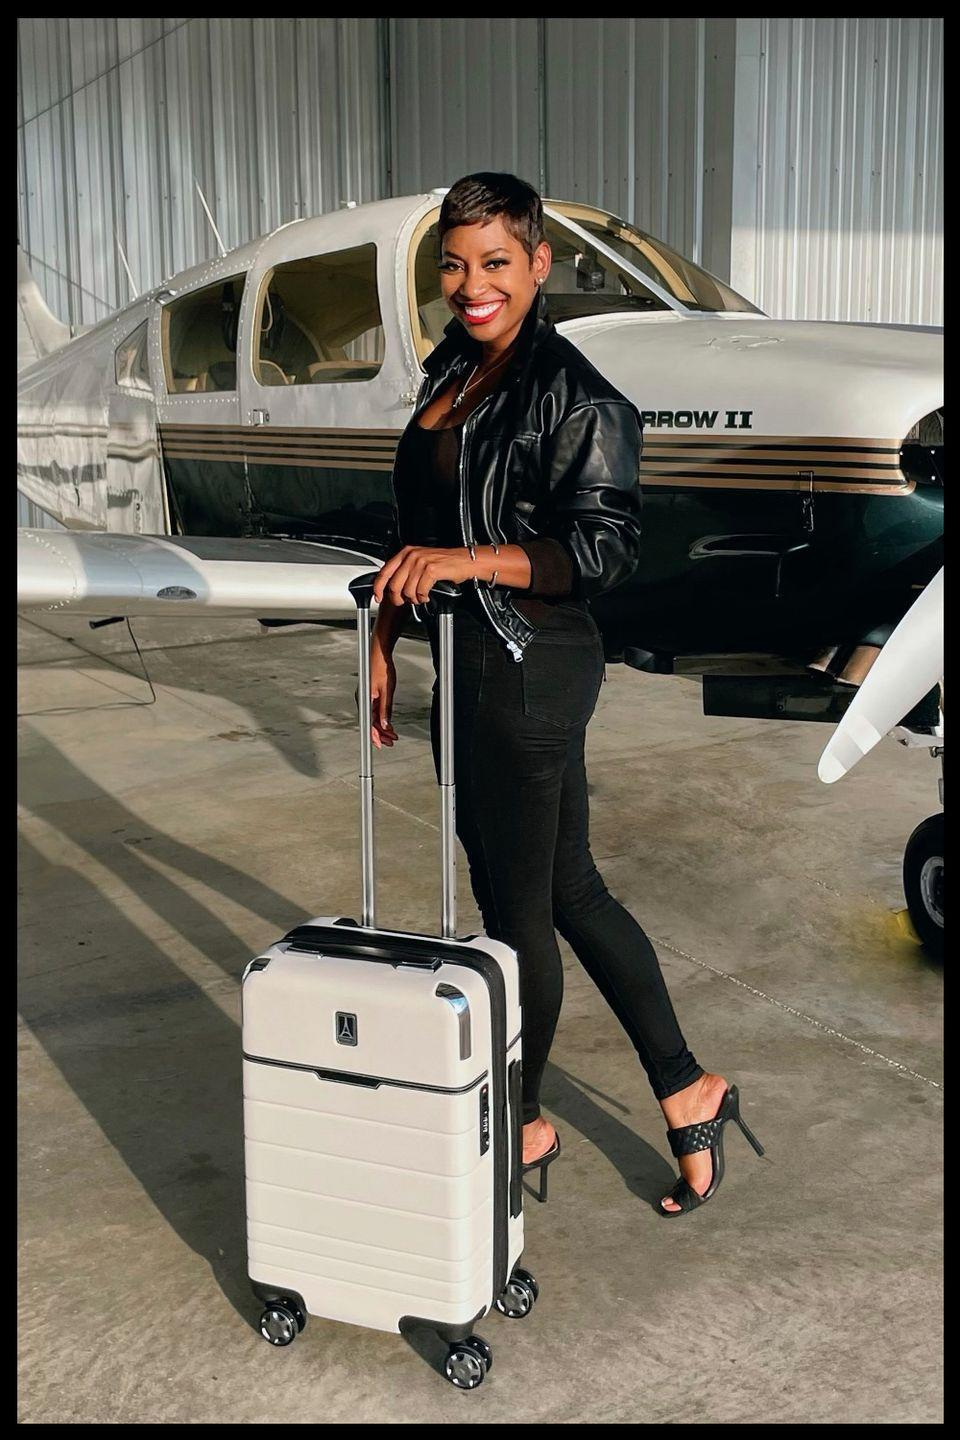 """<p>""""My current go-to bag is my Travelpro x Travel + Leisure Compact Carry-On Expandable Spinner that I found out about online. It not only fits in any overhead compartment (including regional jets), but it also has three internal zipper compartments and a removable zip off toiletry bag! Since I'm also <a href=""""https://www.kelleesetgo.com/"""" rel=""""nofollow noopener"""" target=""""_blank"""" data-ylk=""""slk:a pilot"""" class=""""link rapid-noclick-resp"""">a pilot</a> who flies single engine aircraft and seaplanes, this carry on fits easily in the small cargo area for luggage or in the back seat and provides reassurance that my bag will never be too heavy for weight and balance purposes."""" —<a href=""""https://www.instagram.com/kelleesetgo/"""" rel=""""nofollow noopener"""" target=""""_blank"""" data-ylk=""""slk:@kelleesetgo"""" class=""""link rapid-noclick-resp"""">@kelleesetgo</a></p>"""